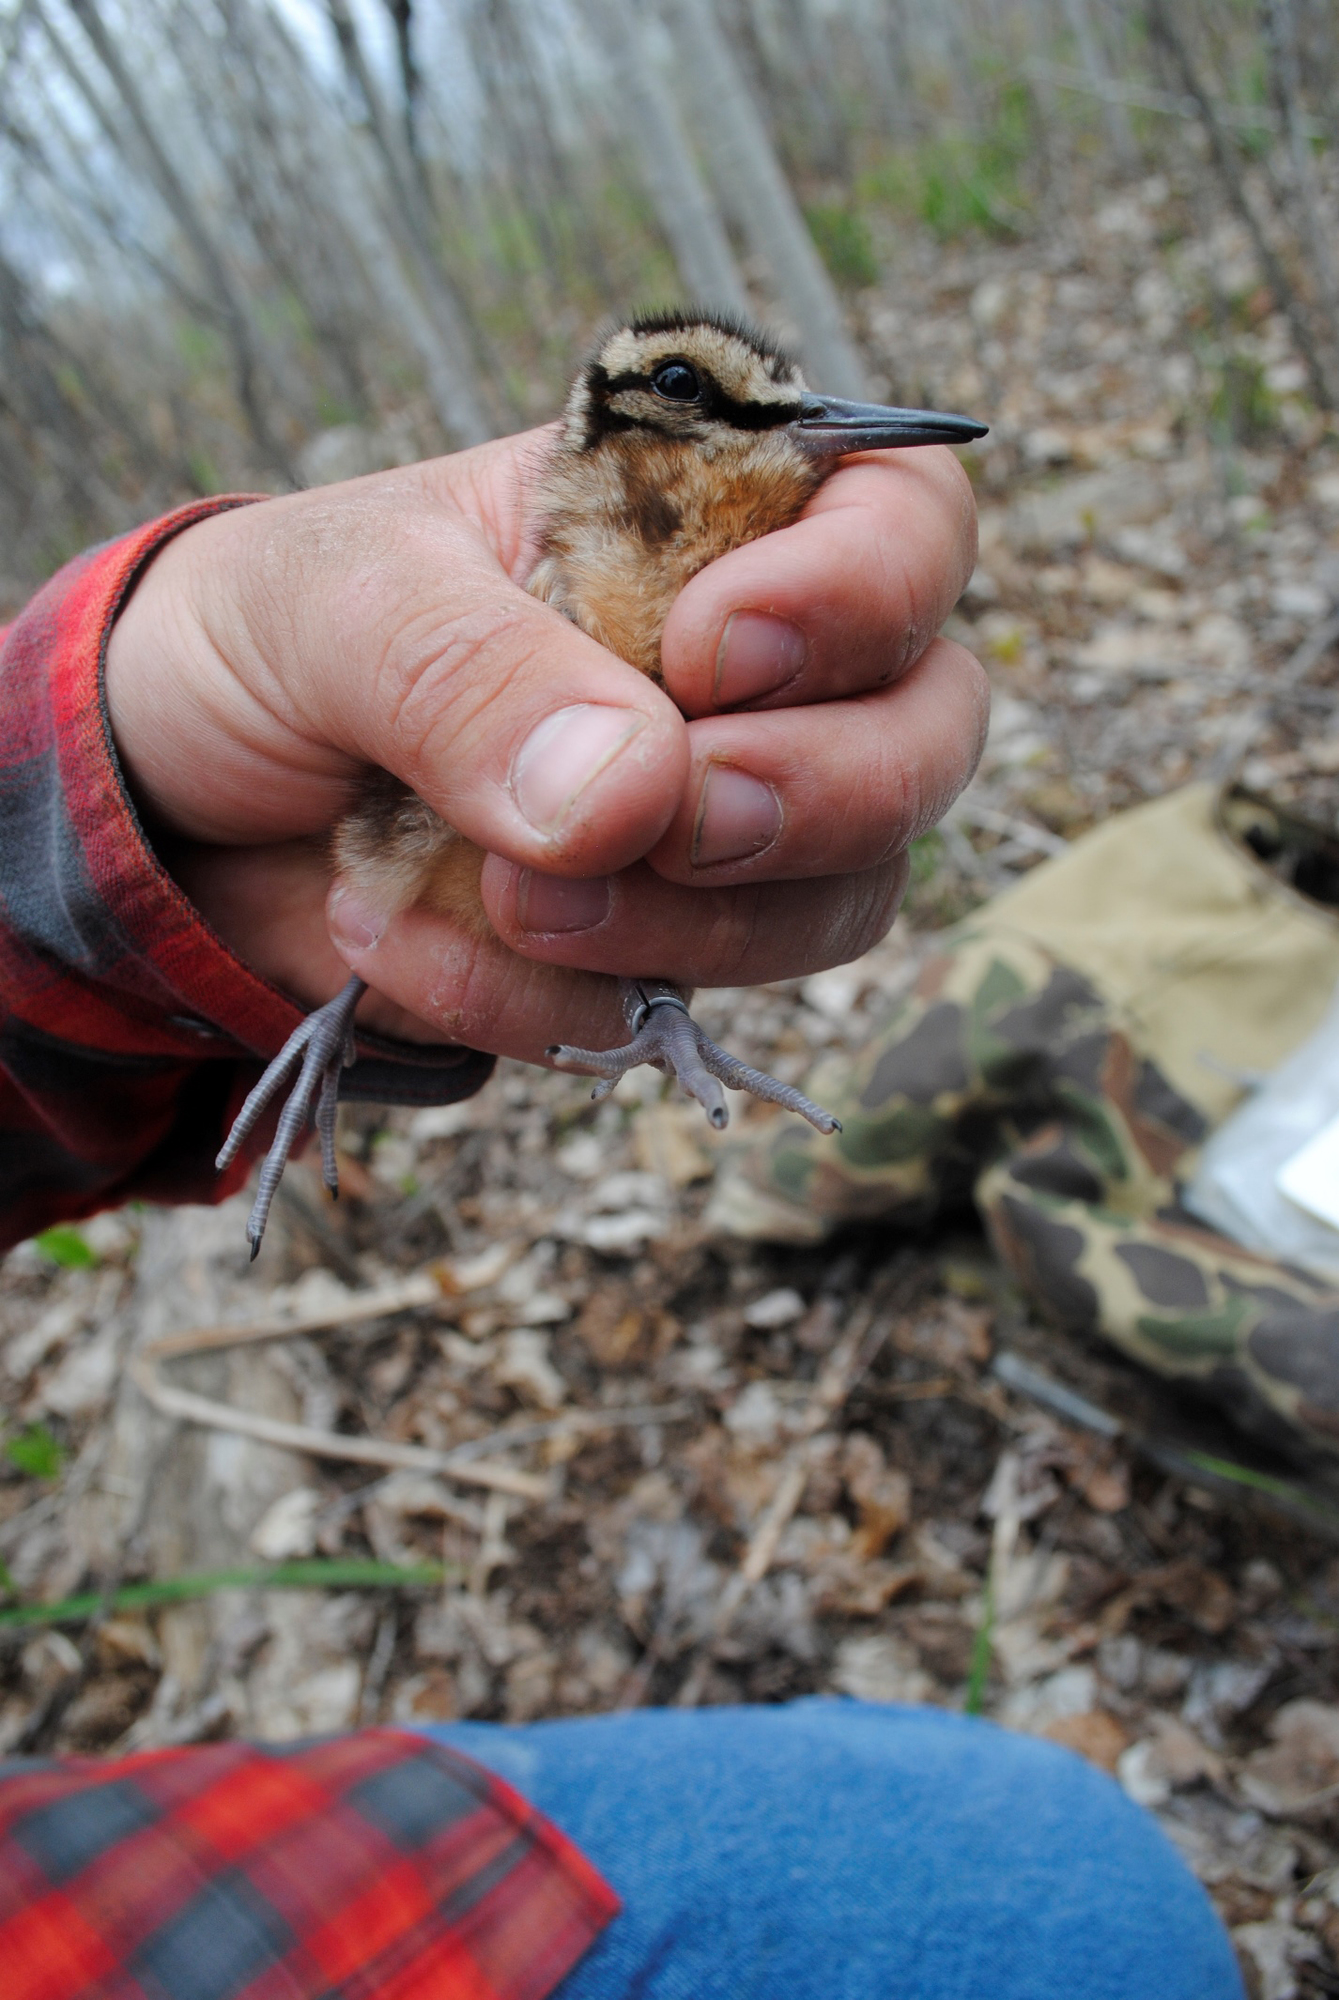 A woodcock chick freshly-banded is shown. The bands around the birds' legs help researchers learn about their seasonal movements.